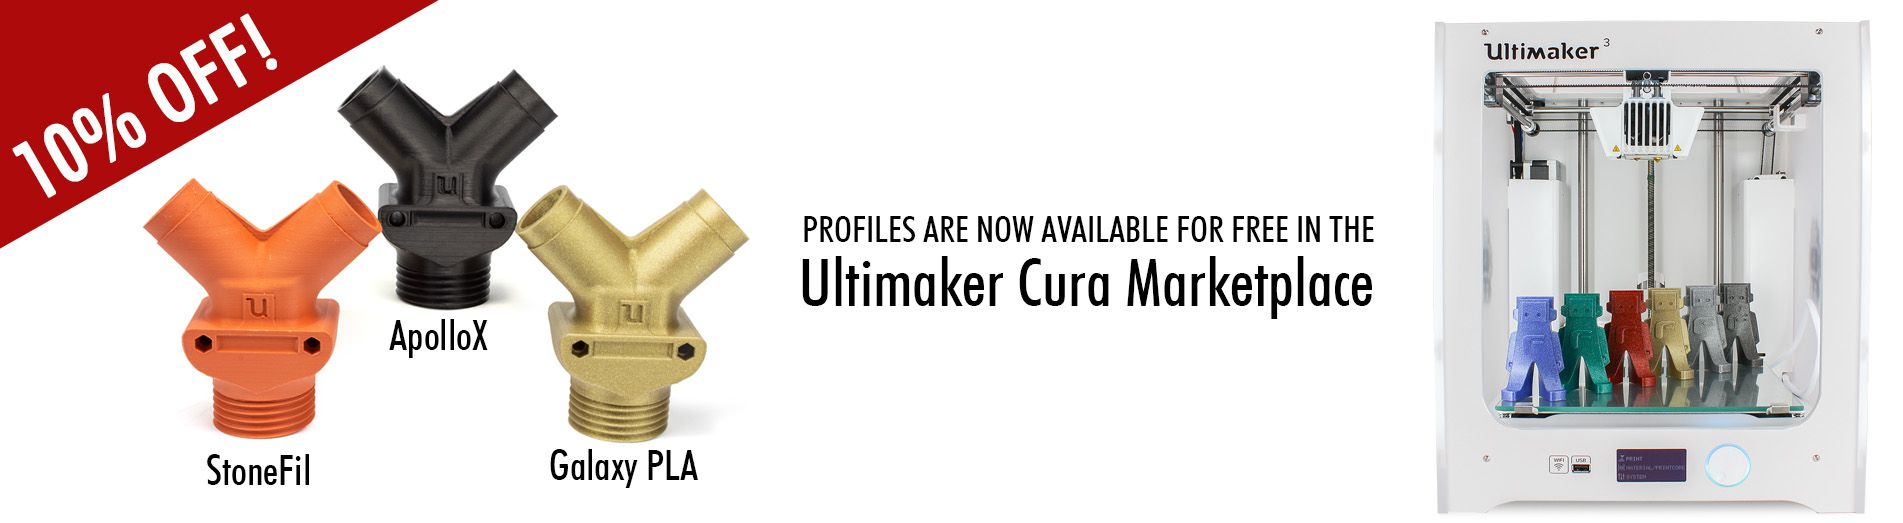 FormFutura participates in Ultimaker Material Alliance Program